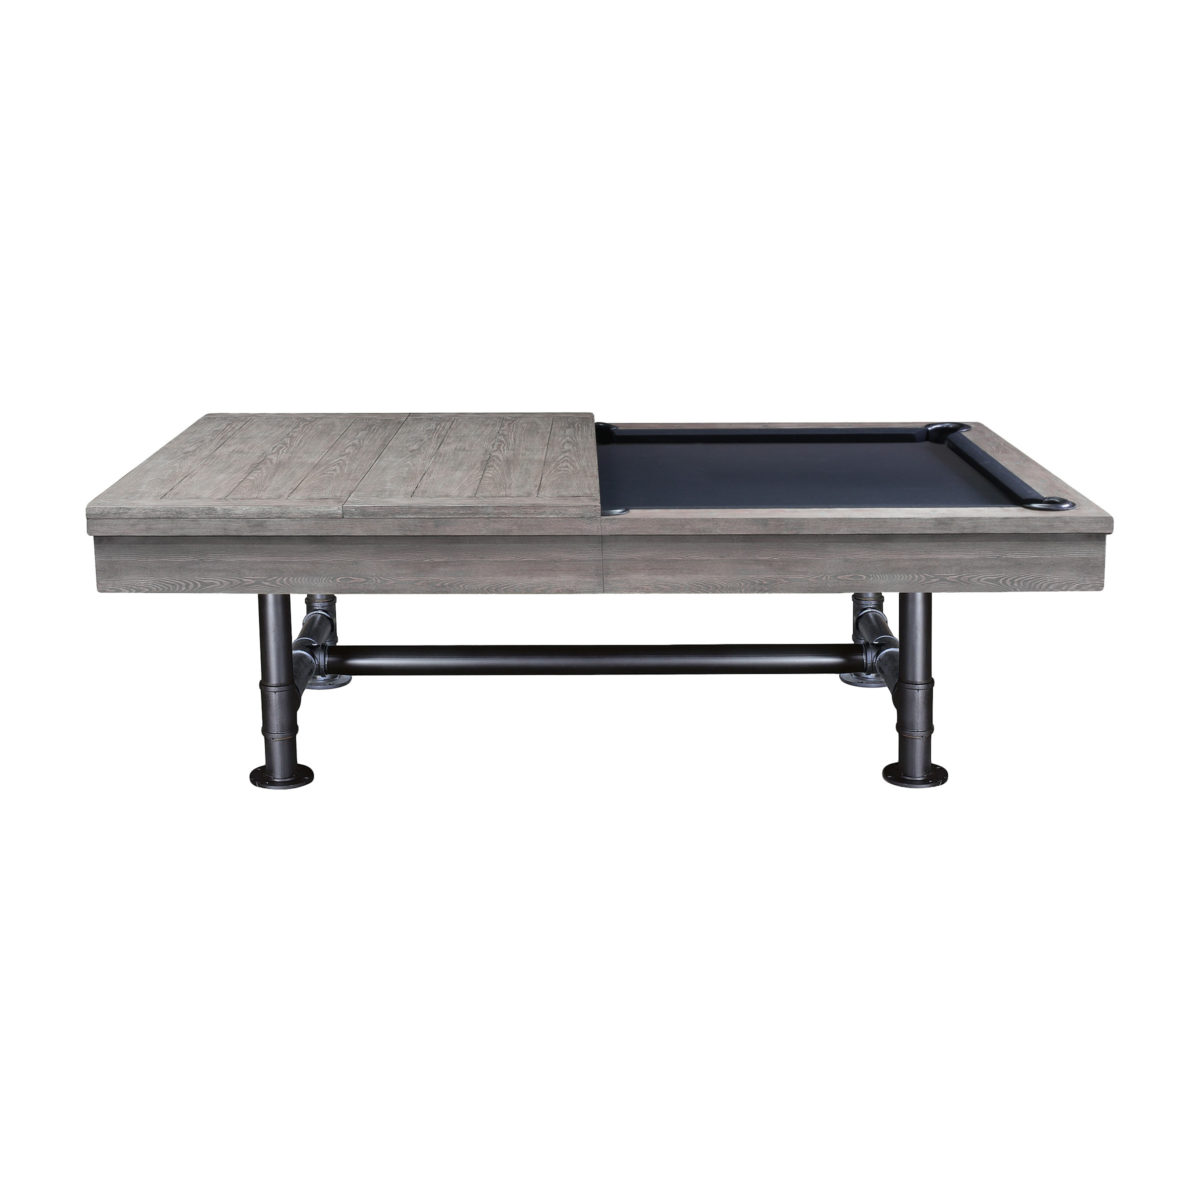 the_bedford_silver_mist_table_with_half_dining_top_2018